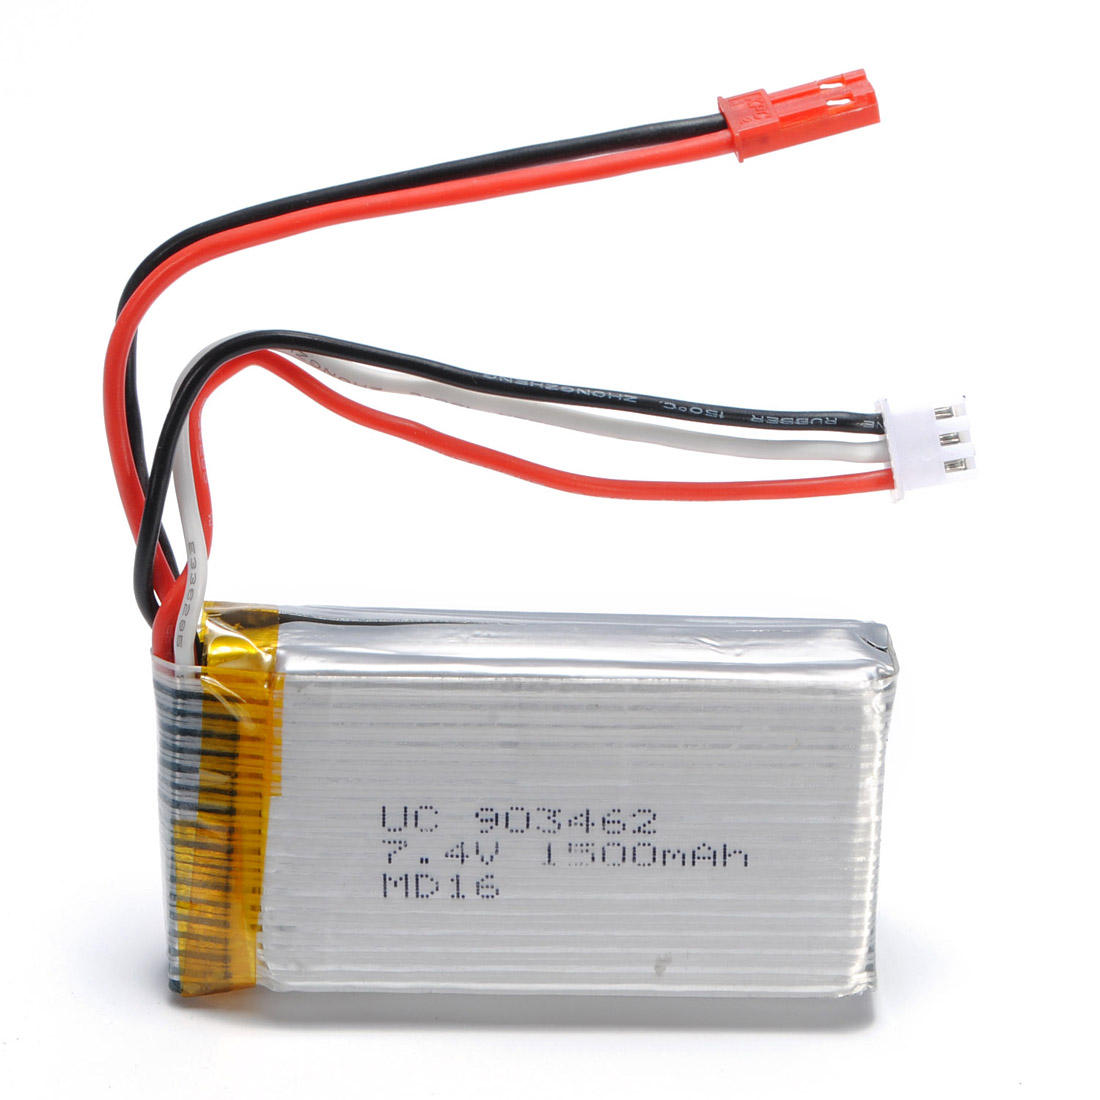 Wltoys V913 Rc Helicopter Spare Parts 74v 1500mah Battery 25 Com Buy Wl V977 Receiver Circuit Board